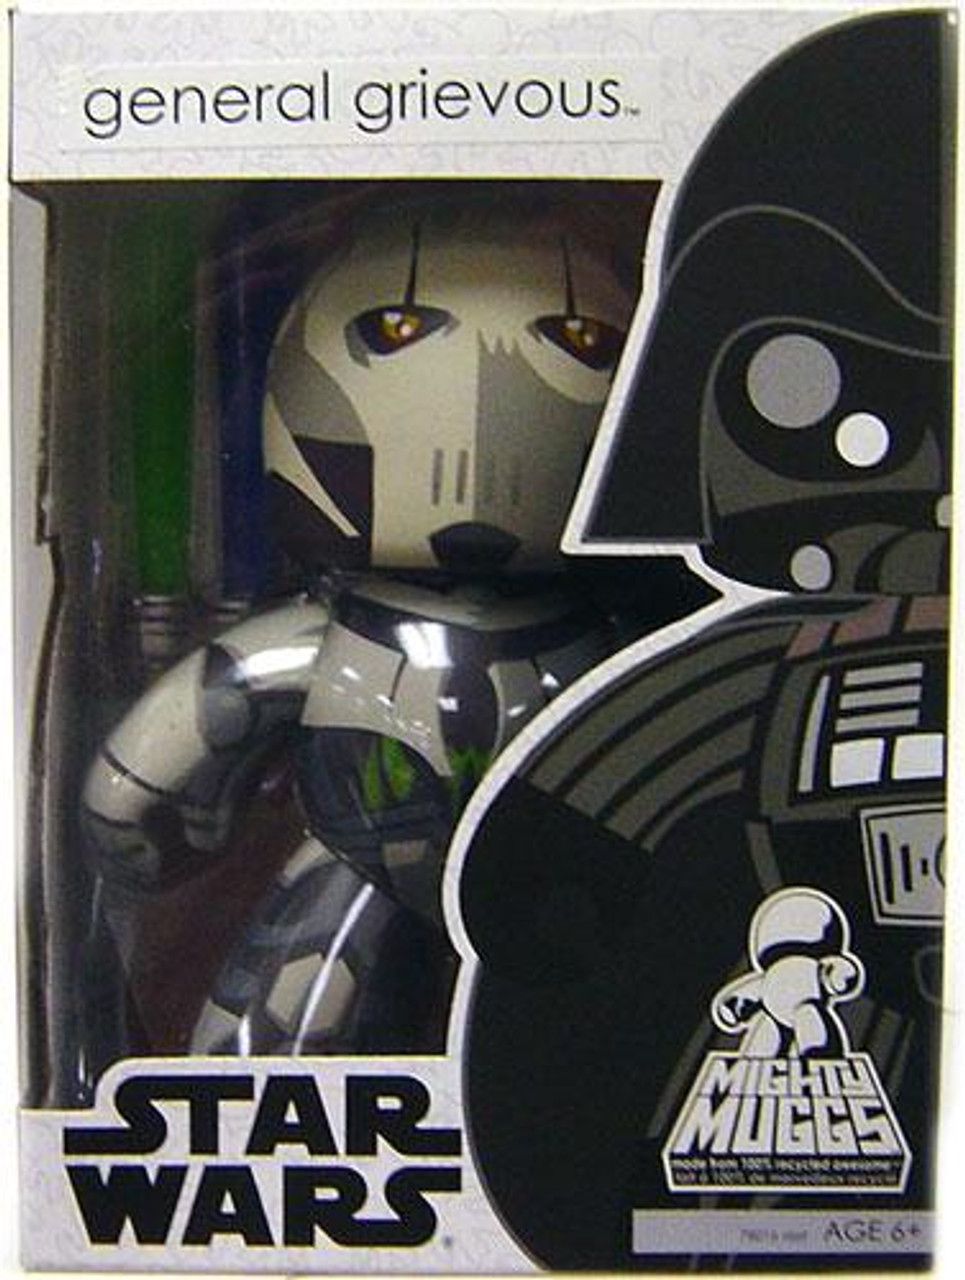 Star Wars Revenge of the Sith Mighty Muggs Wave 4 General Grievous Vinyl Figure